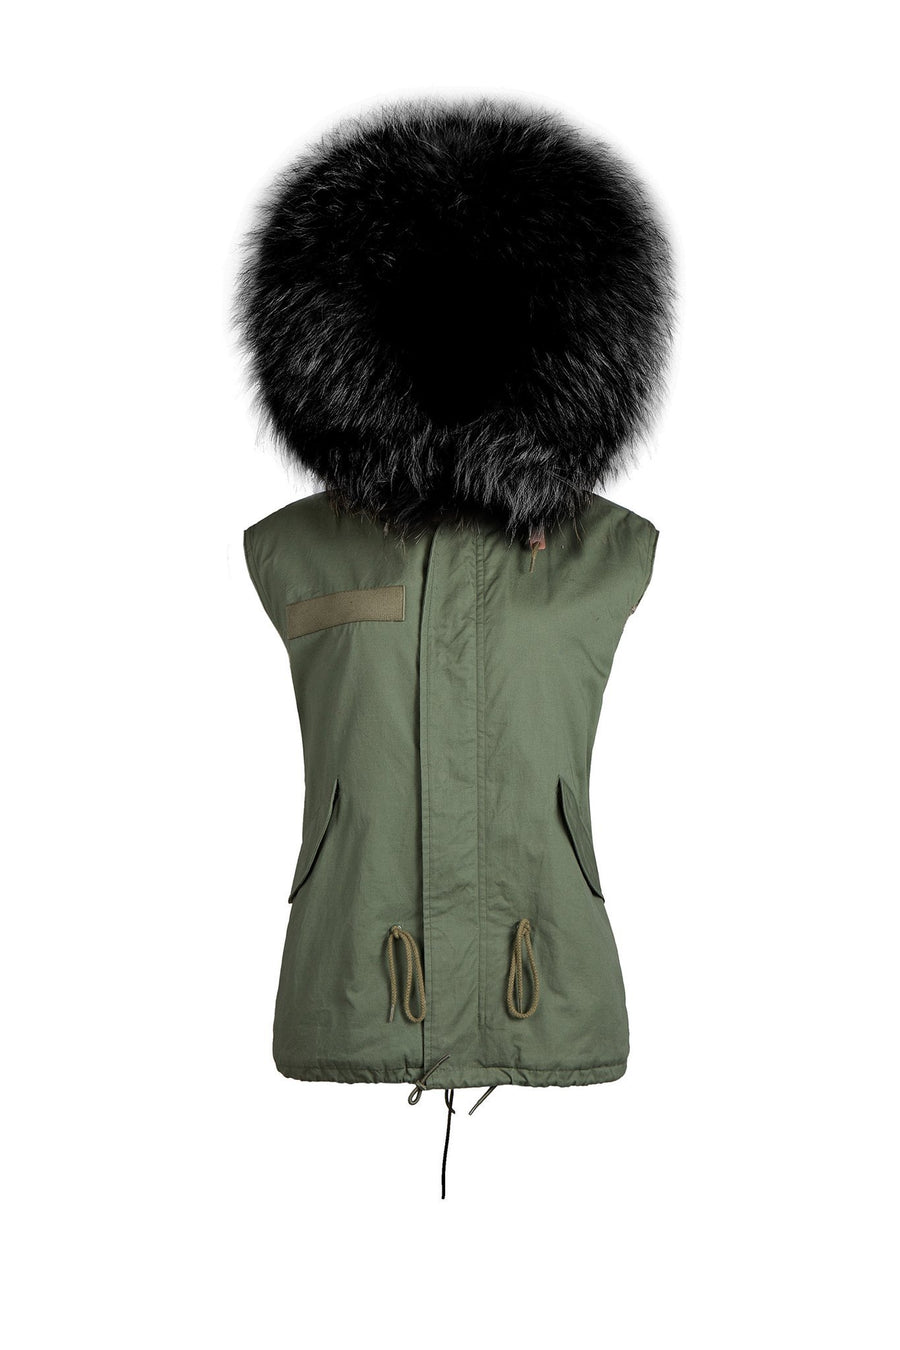 Green and Black Gilet